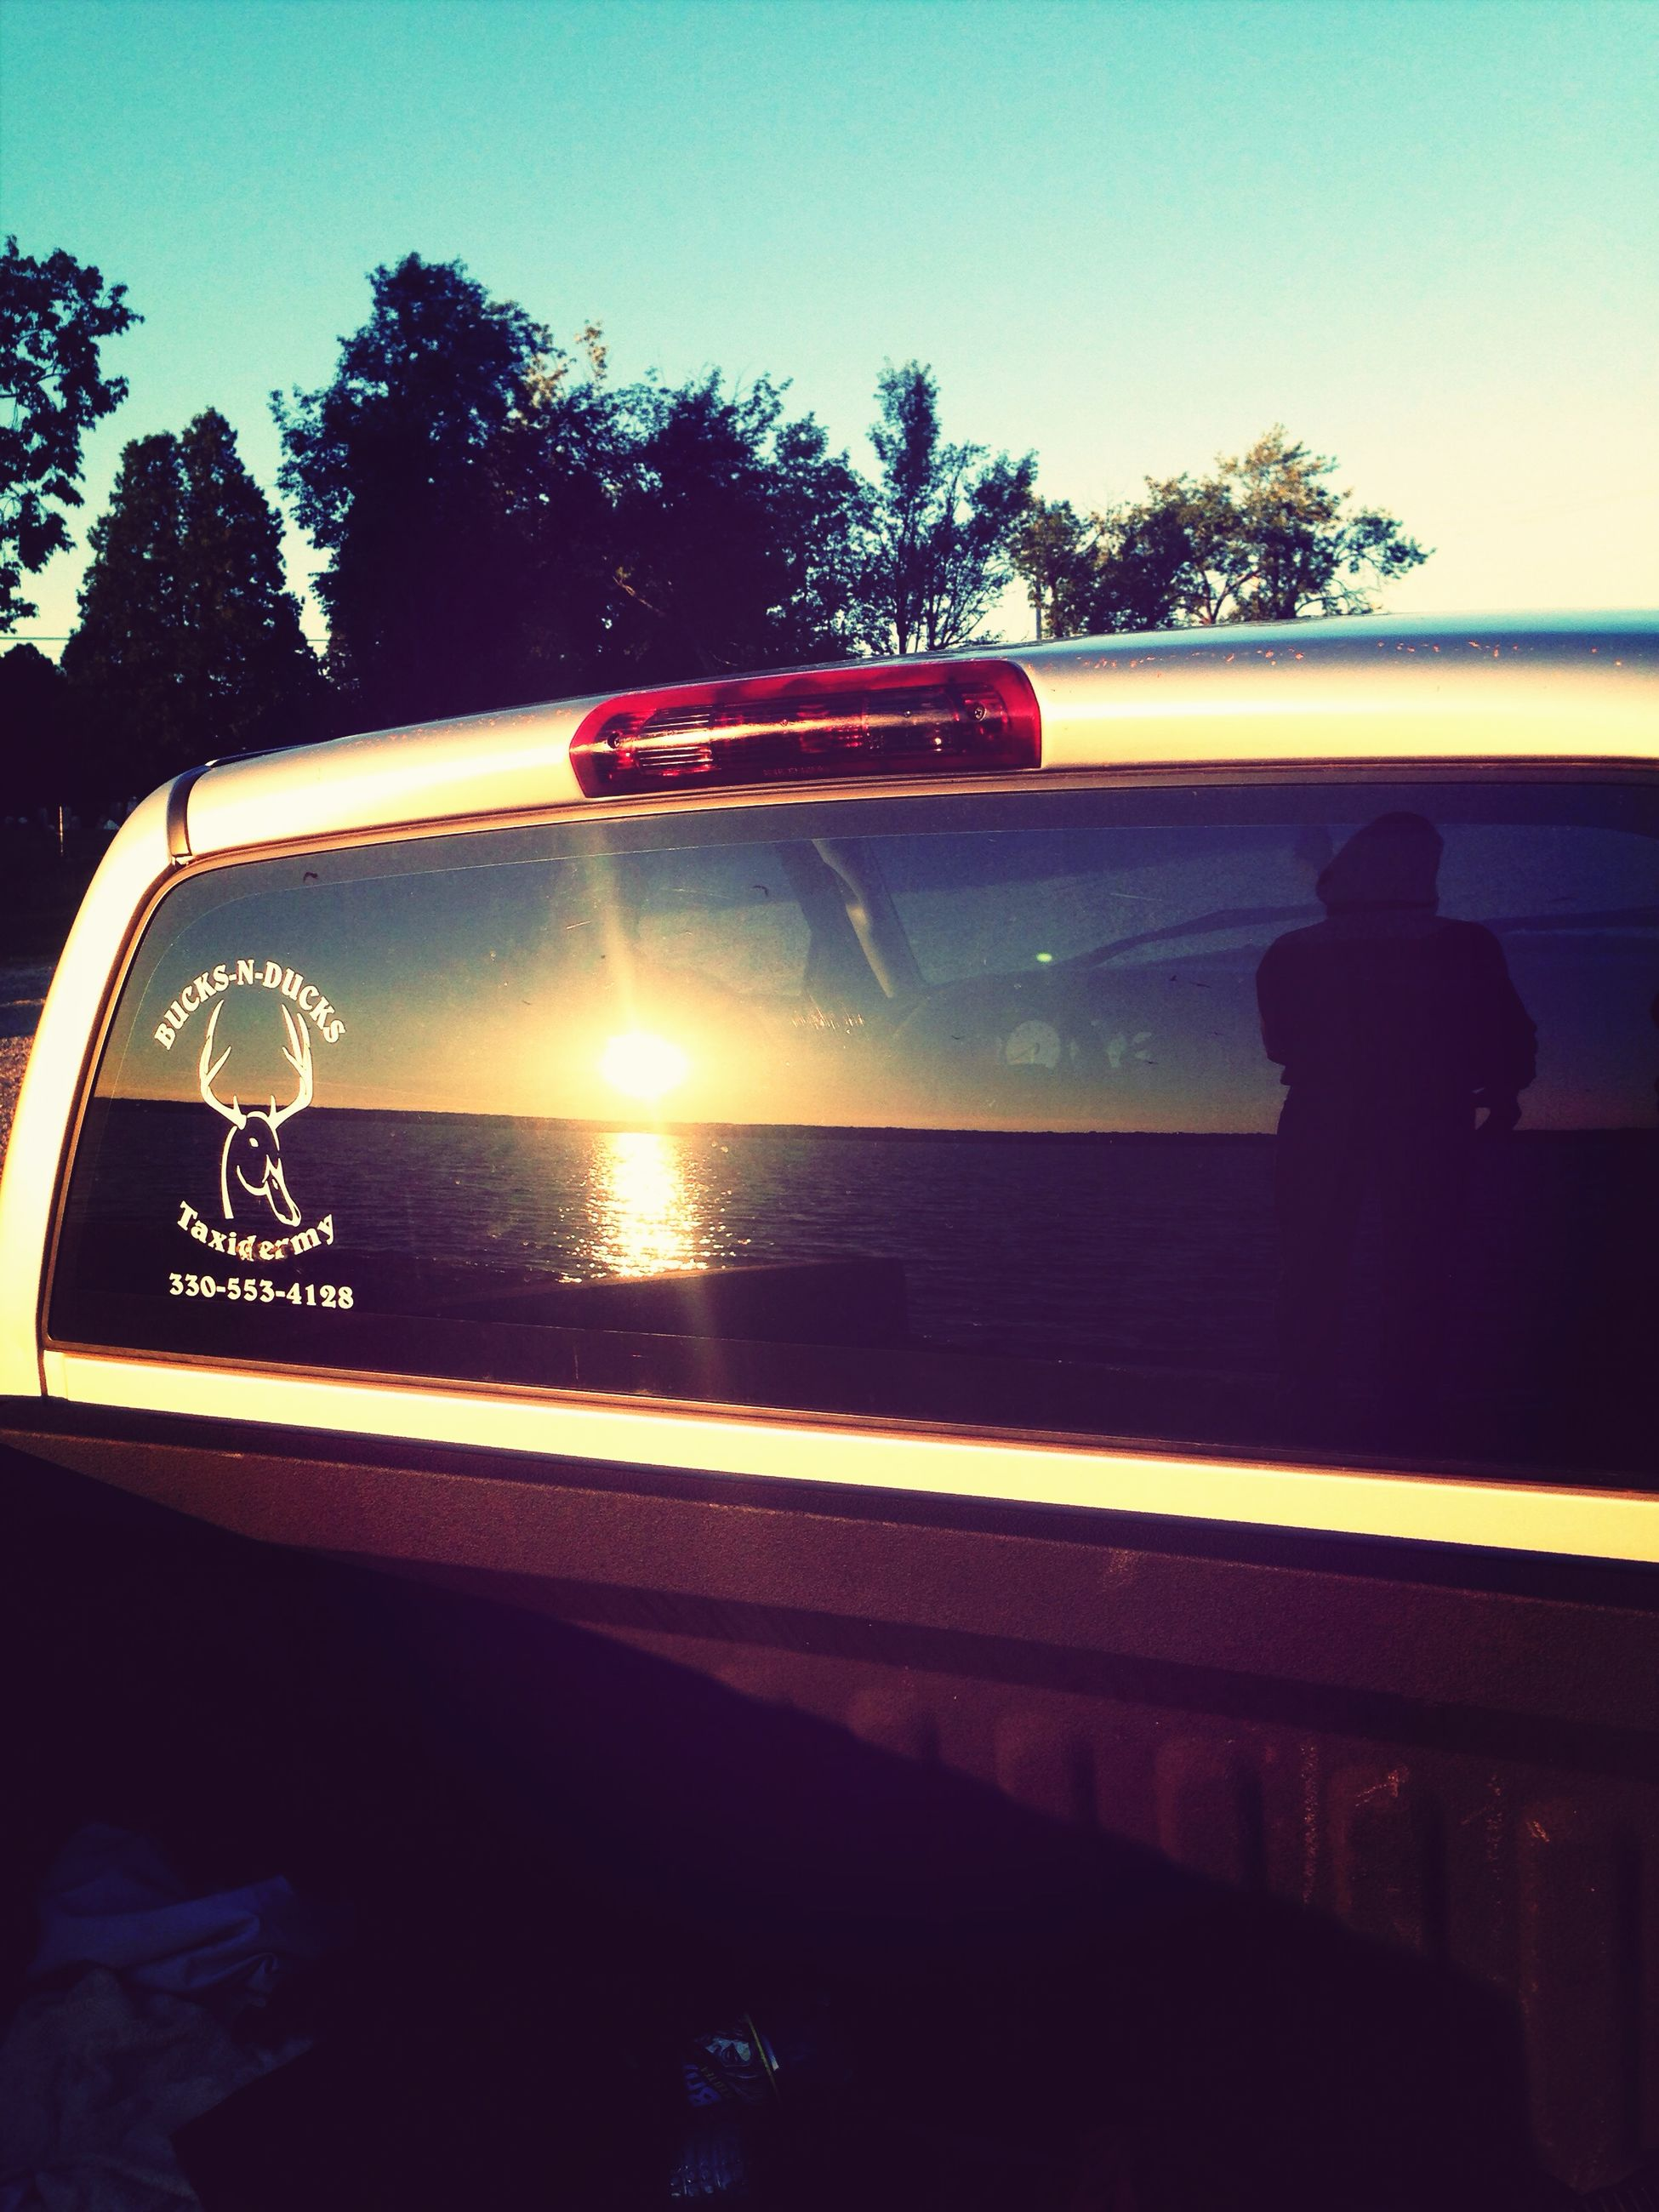 transportation, land vehicle, mode of transport, car, tree, clear sky, sunset, road, silhouette, reflection, vehicle interior, sky, side-view mirror, travel, street, sunlight, on the move, glass - material, sun, windshield